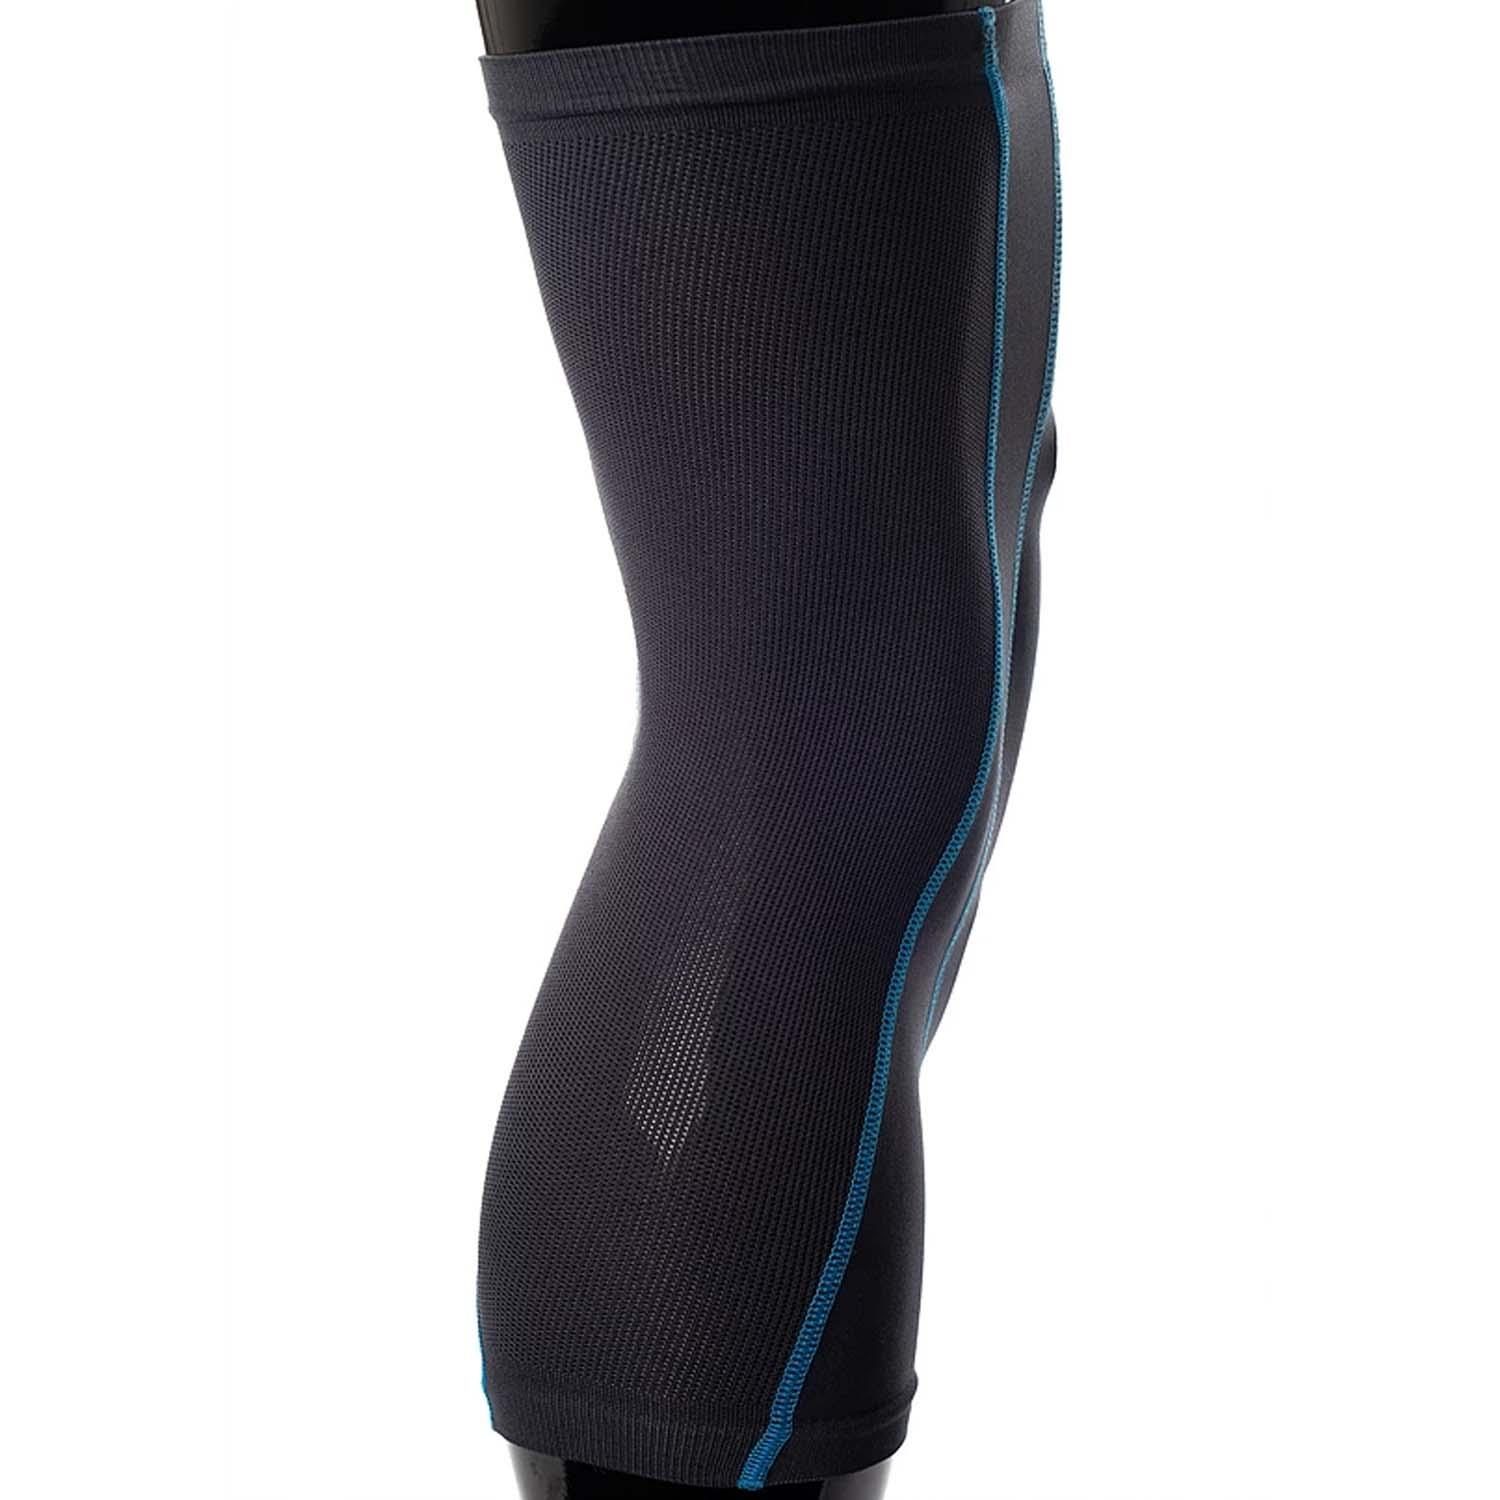 Forcefield Winter Sport Tube 1 2020